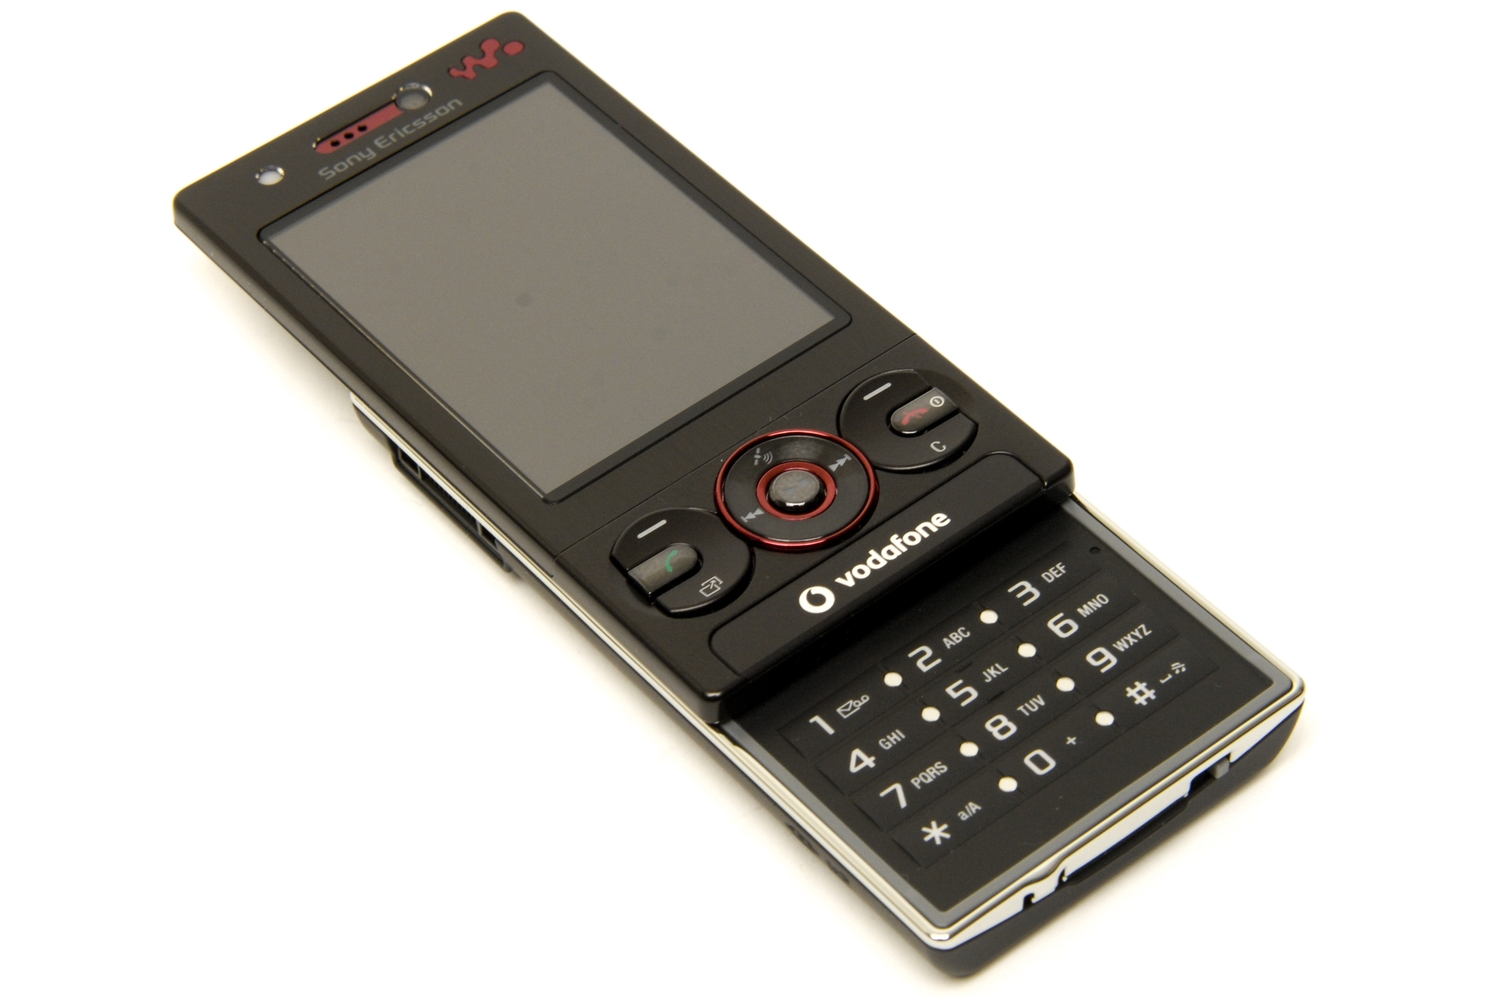 Sony Ericsson W715 Review: Sony Ericsson's W715 Walkman ...